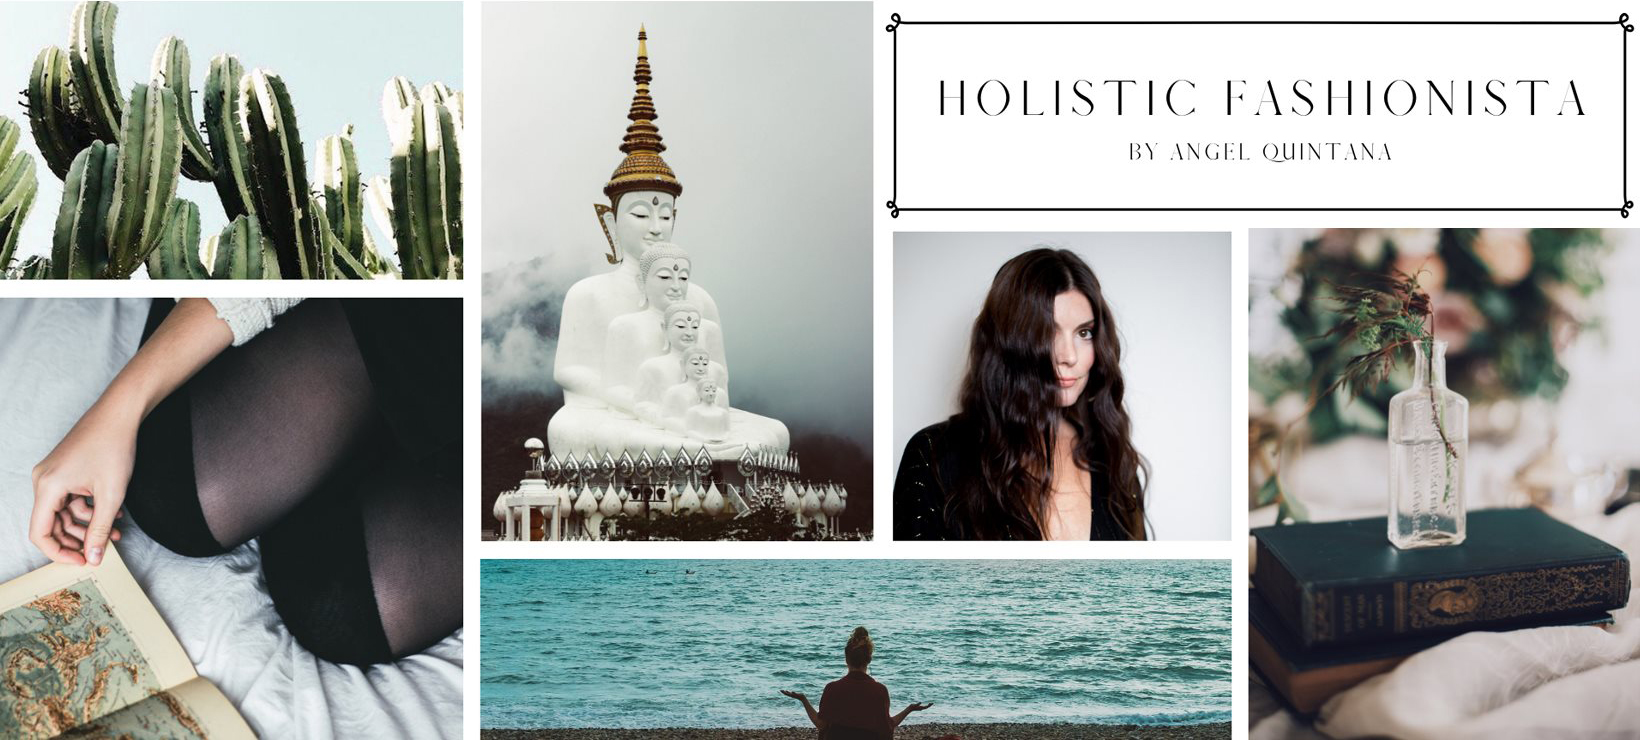 Join the Holistic Fashionista   Facebook Community   to be the first to know when new  CLASSES, ARTICLES, and  VIDEOS  are released!